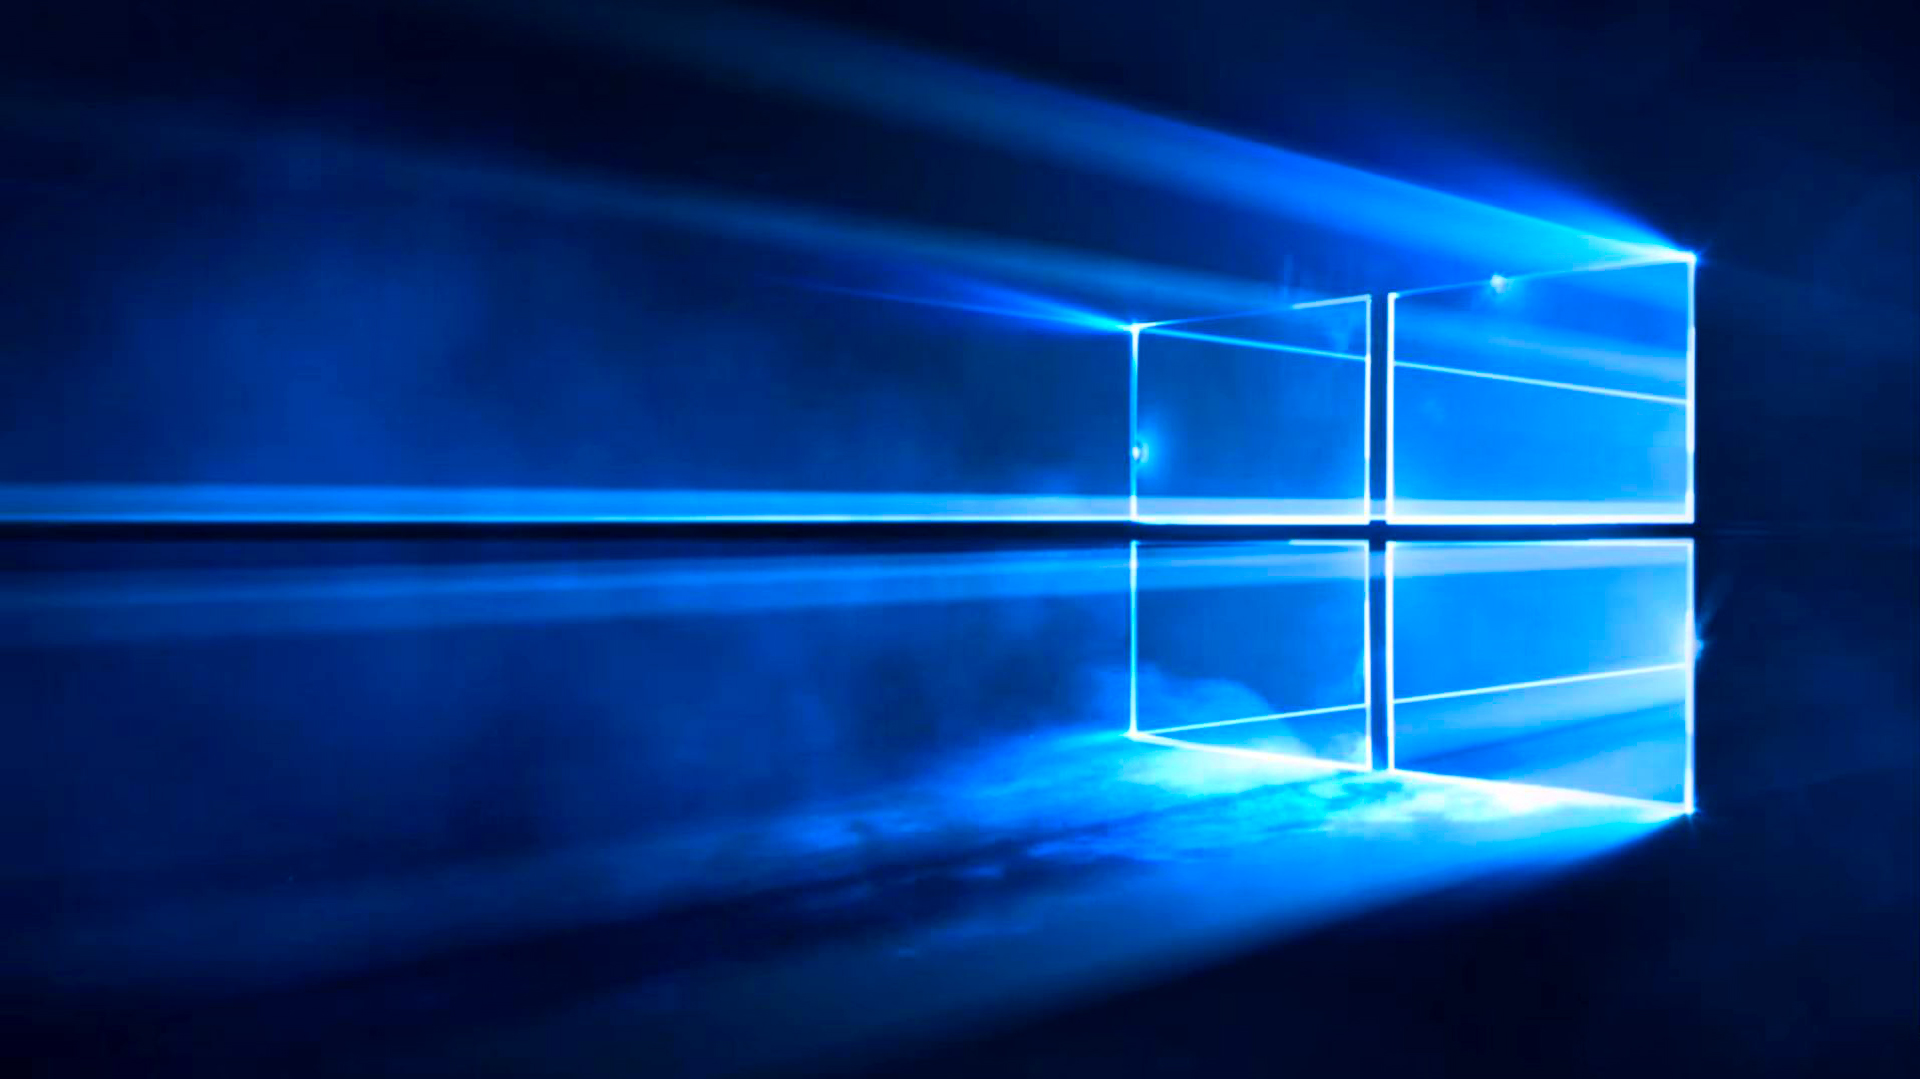 Flash-news-windows-10-wallpaper-aus-licht-wird-magie.